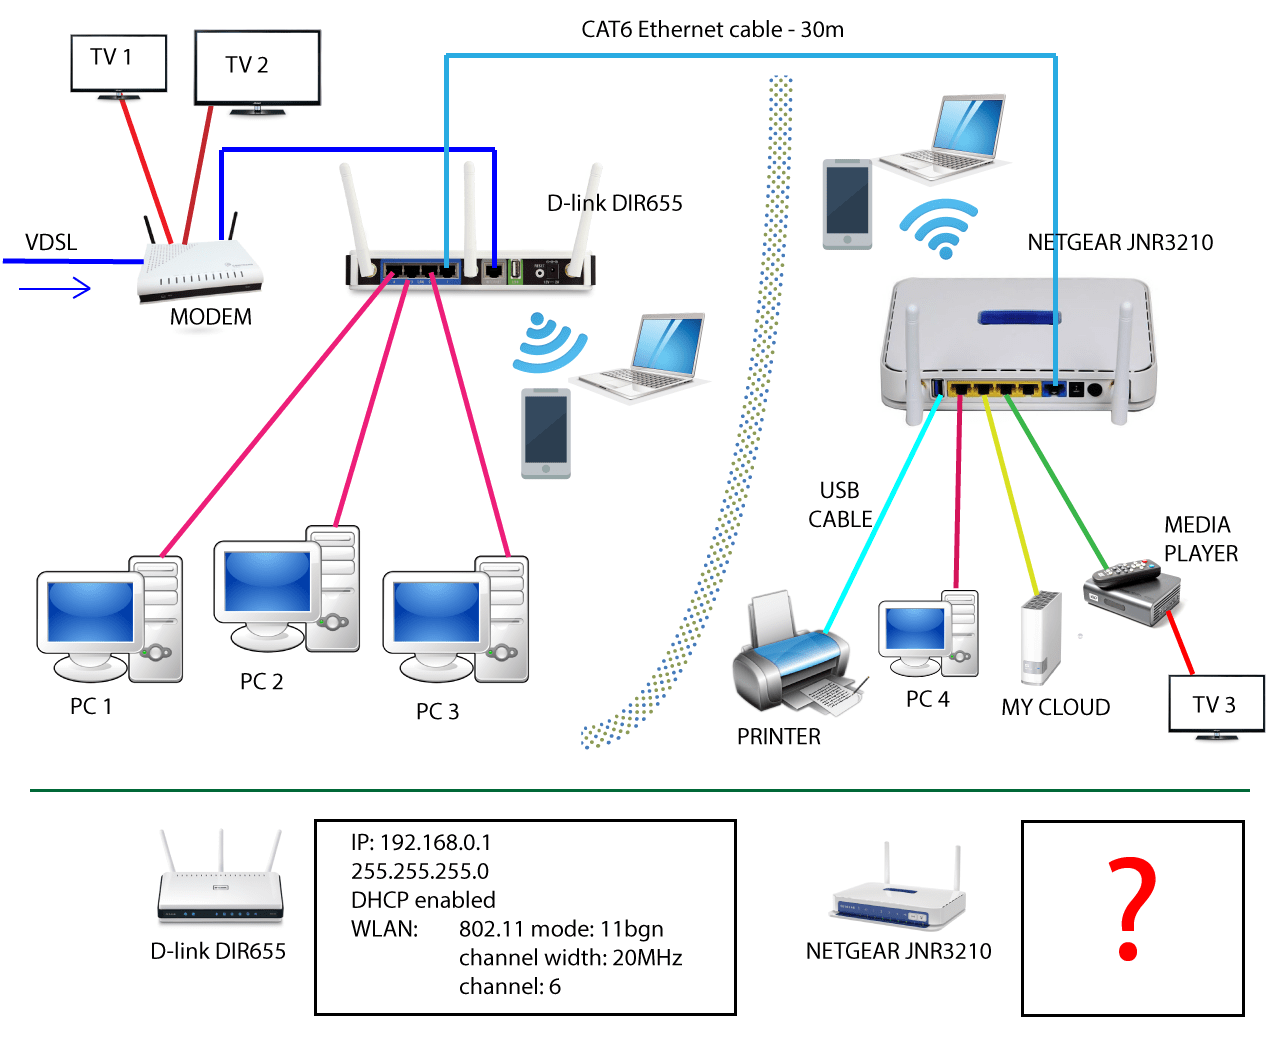 Solved: Two routers on one work gear setup  NETGEAR